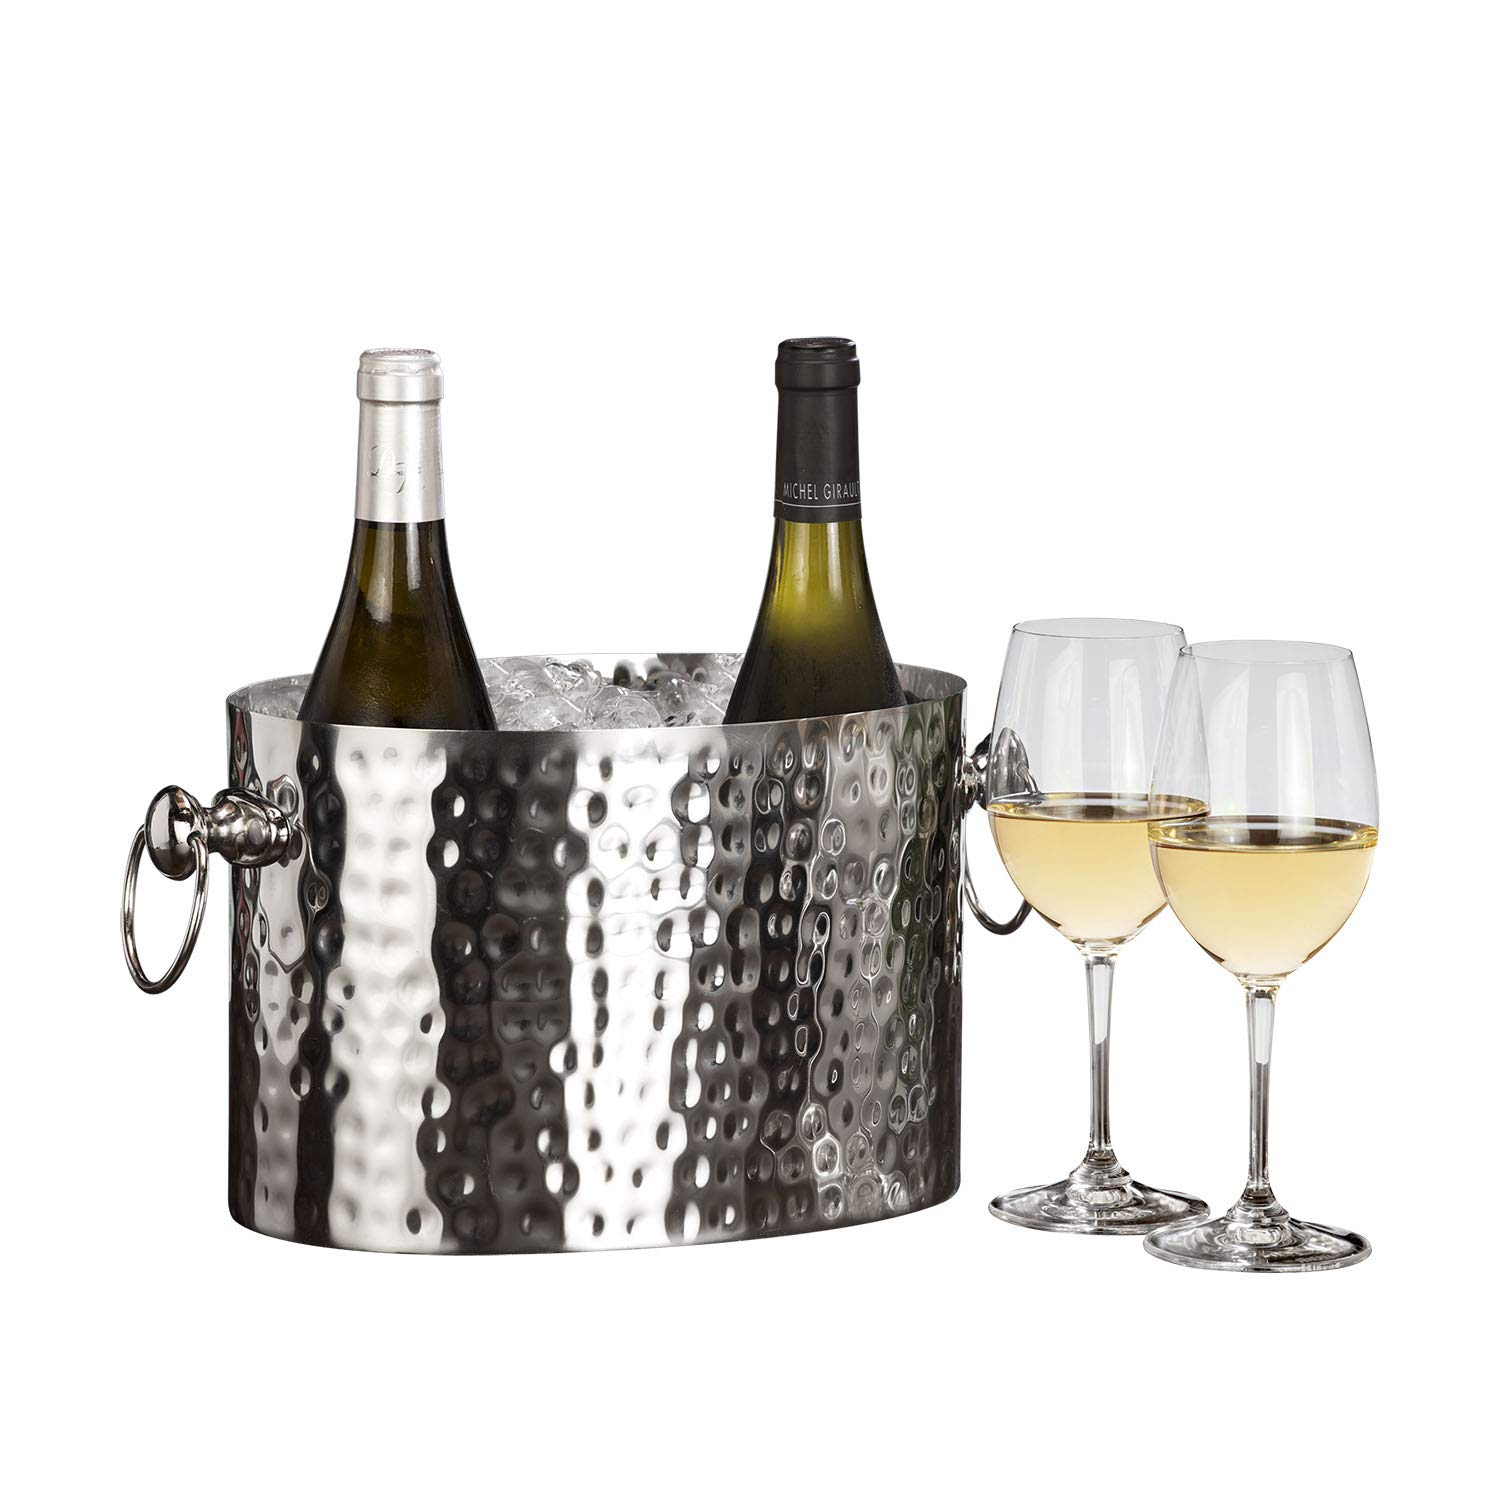 Chic Chill Handcrafted Artisan 2 bottle Champagne and Wine Chiller (Stainless Steel) by Chic Chill